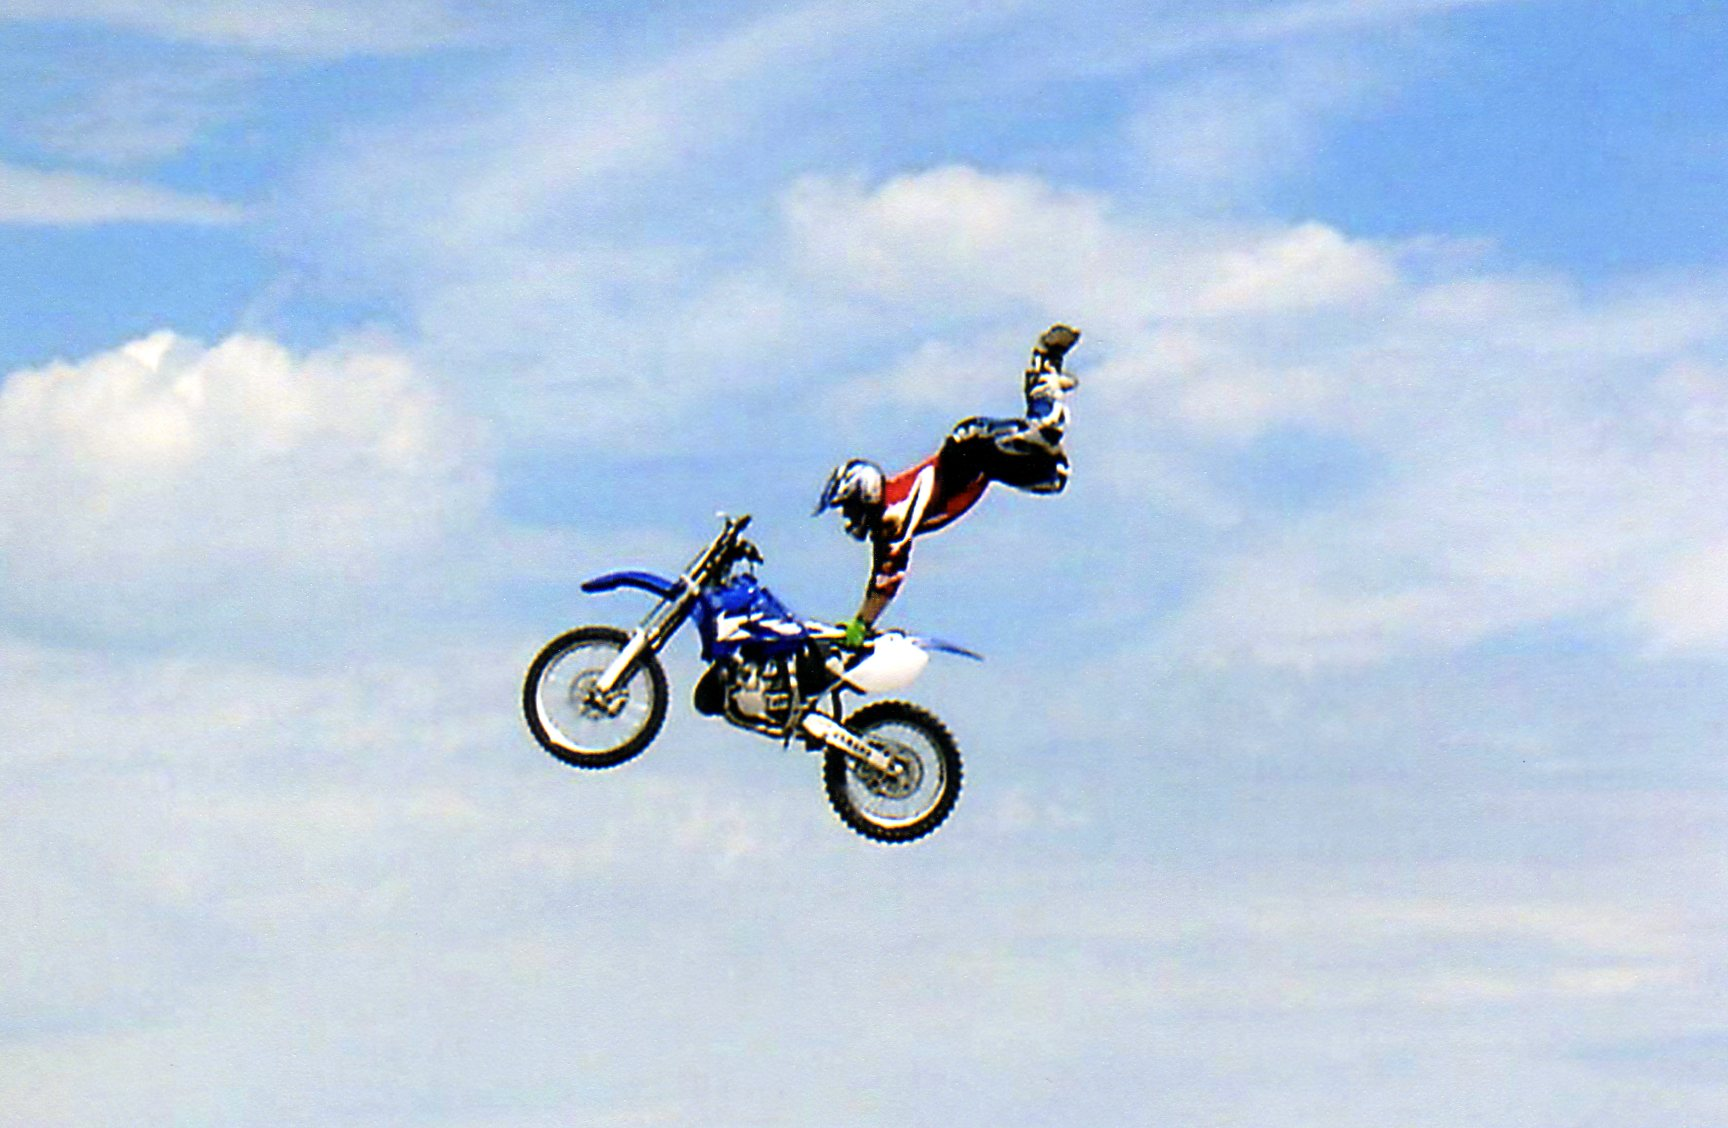 FMX Rodeo Trick